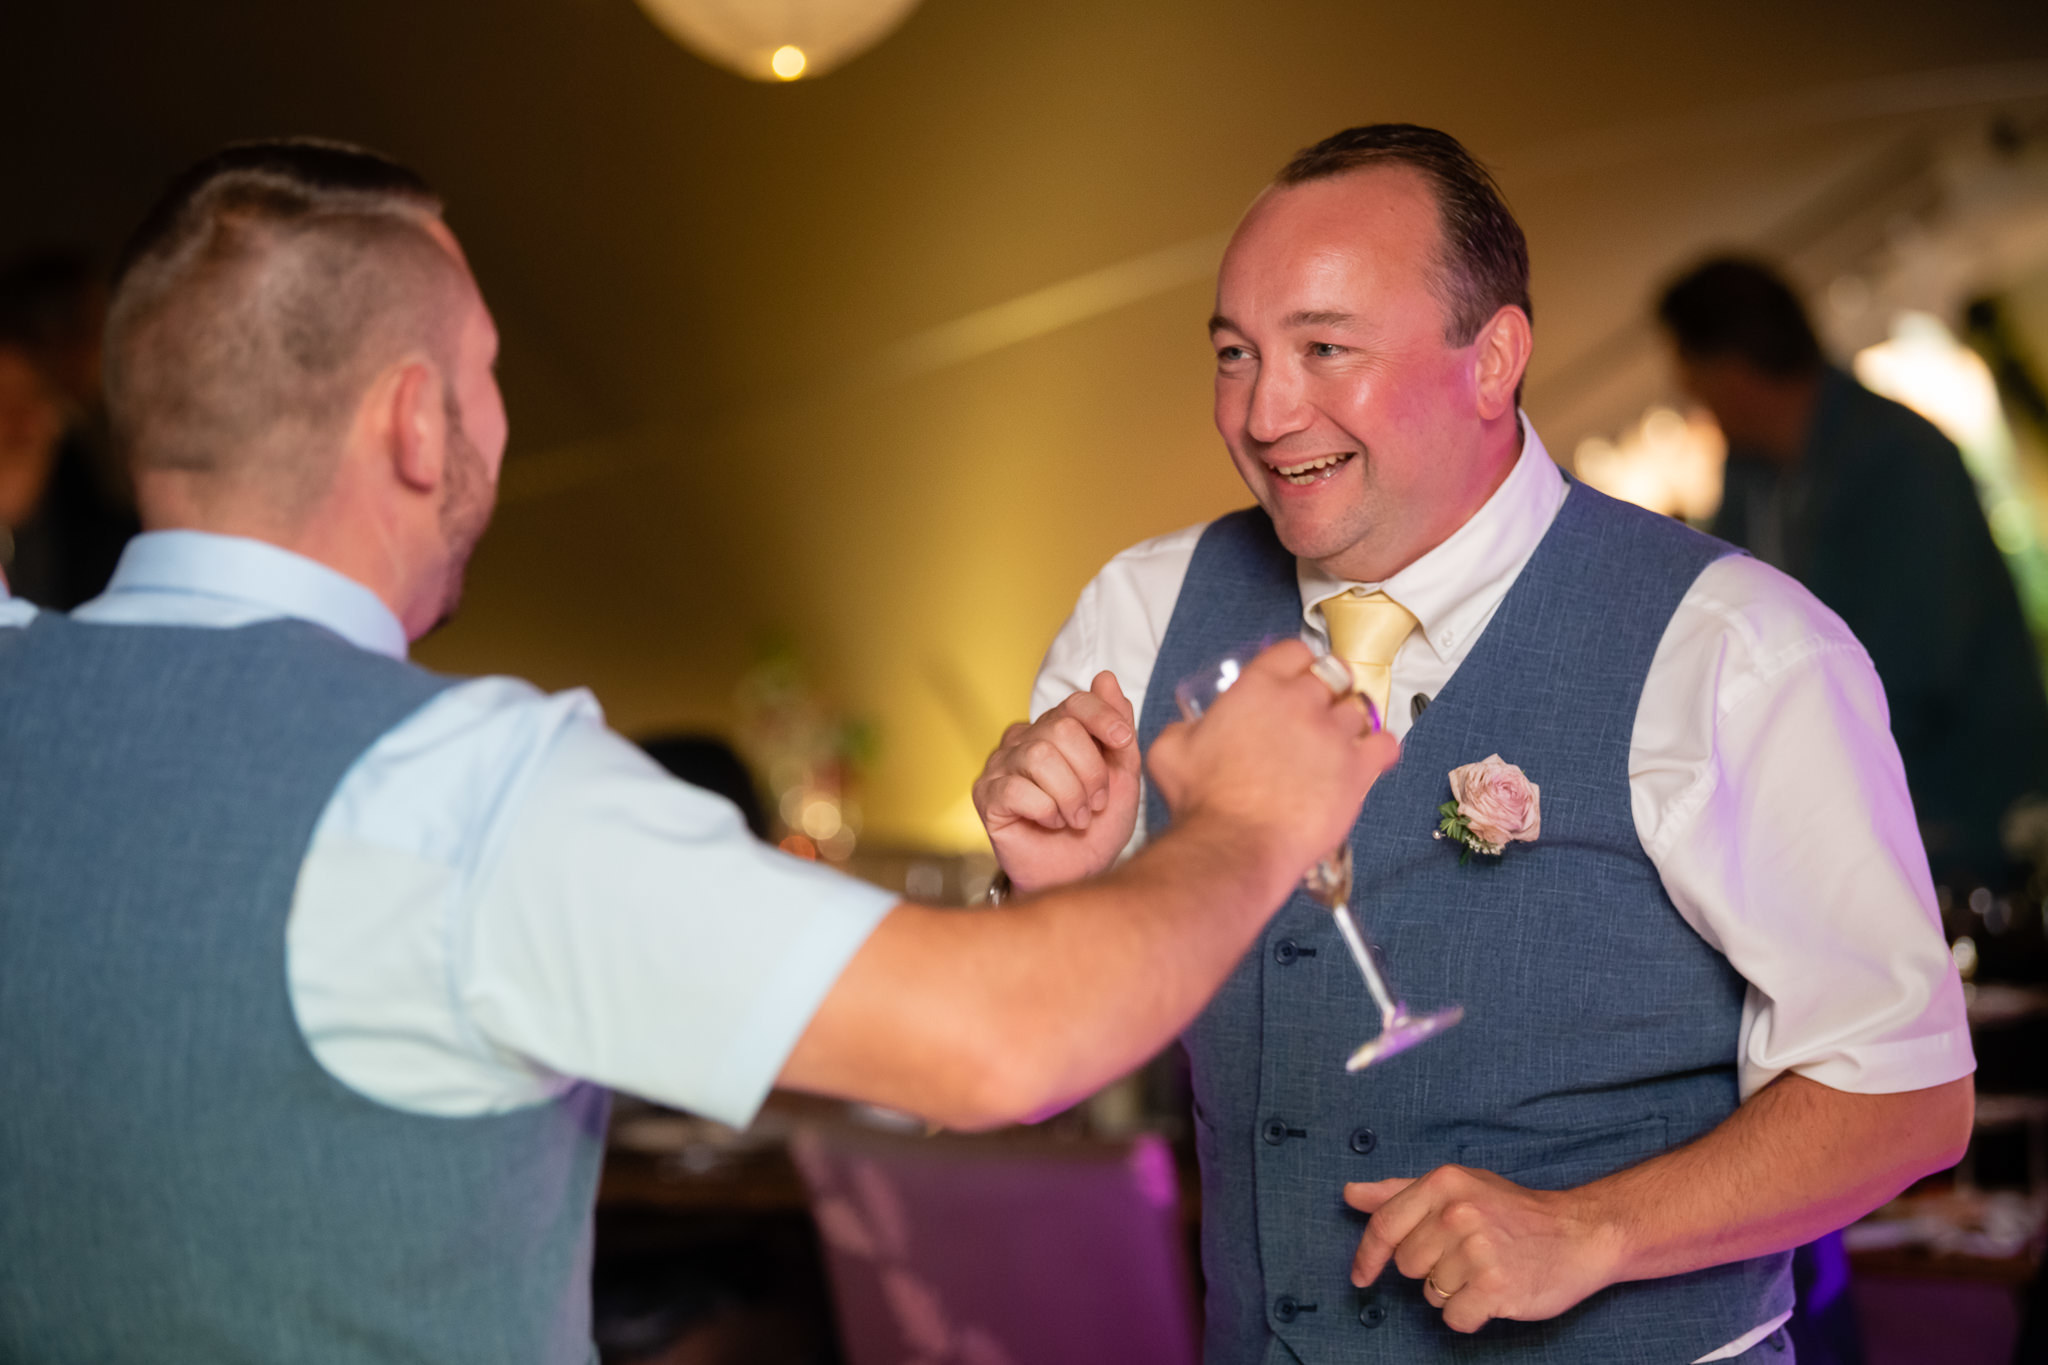 The groom dancing